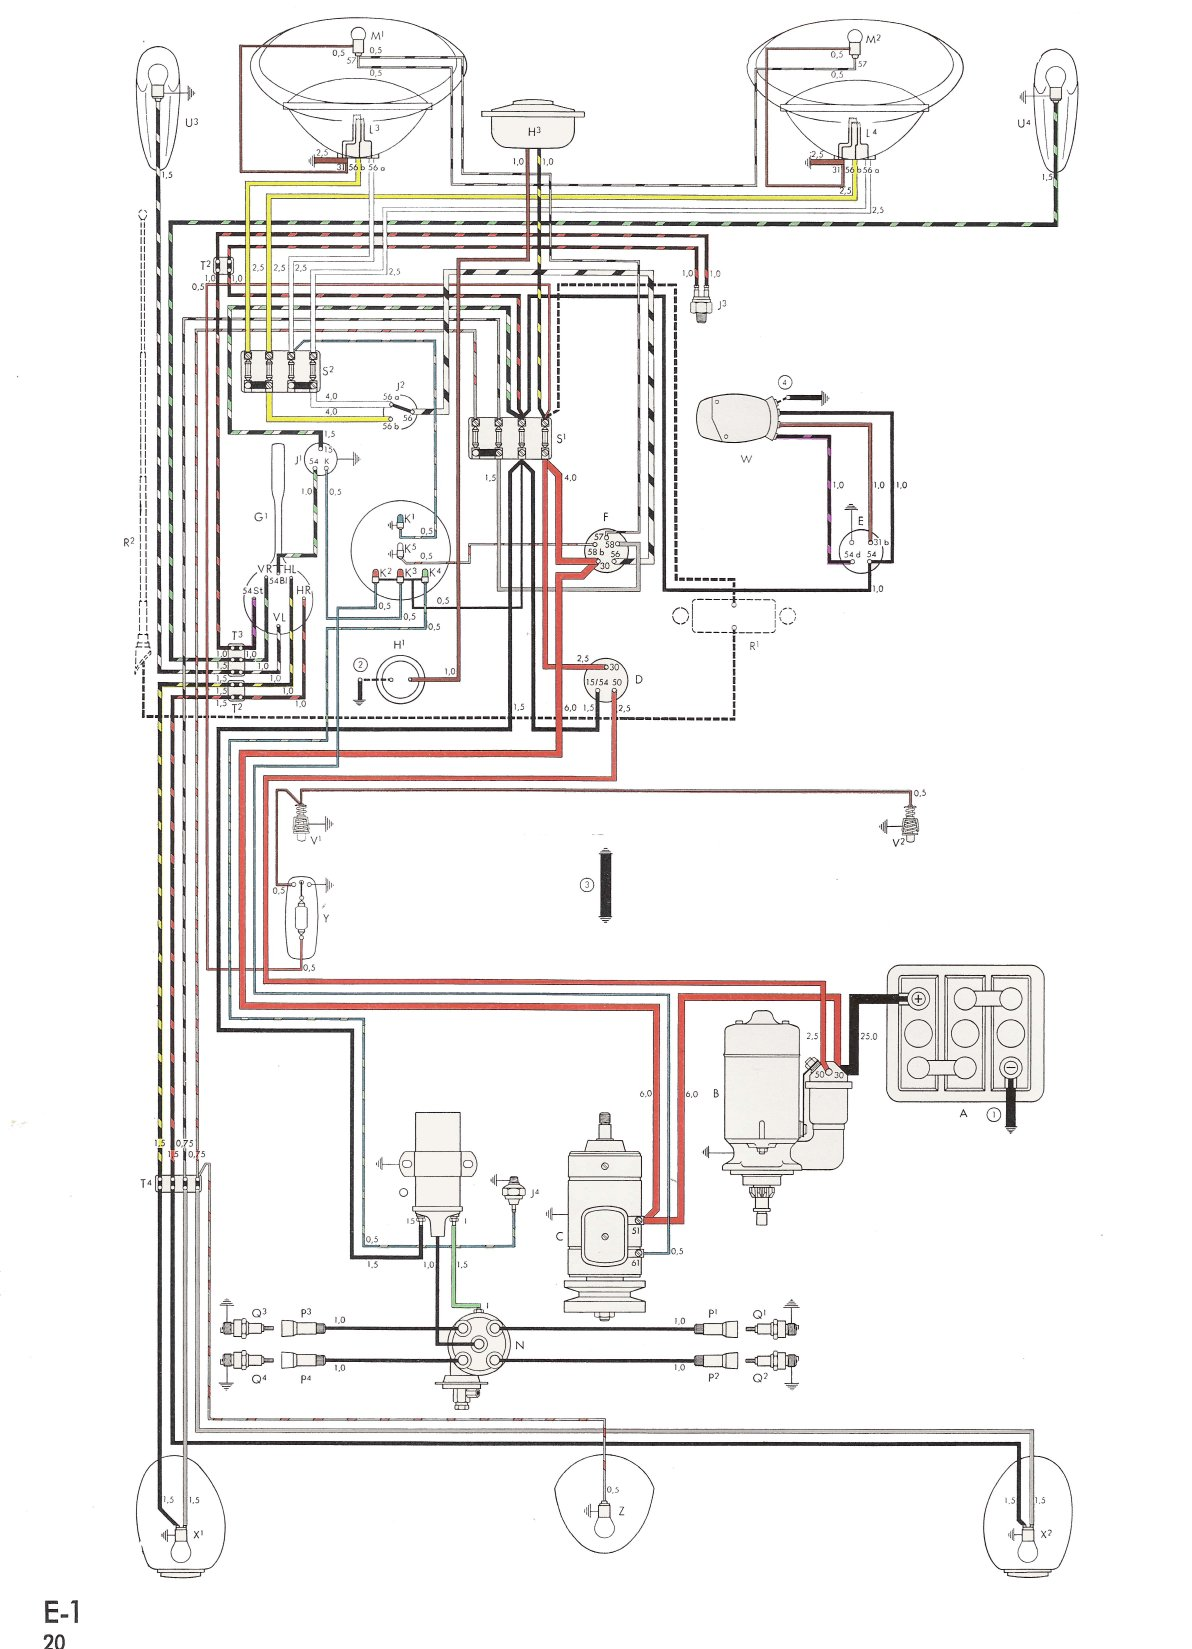 bug60 vw beetle wiring diagram 1974 1973 vw beetle wiring diagram 1975 vw beetle wiring harness at edmiracle.co